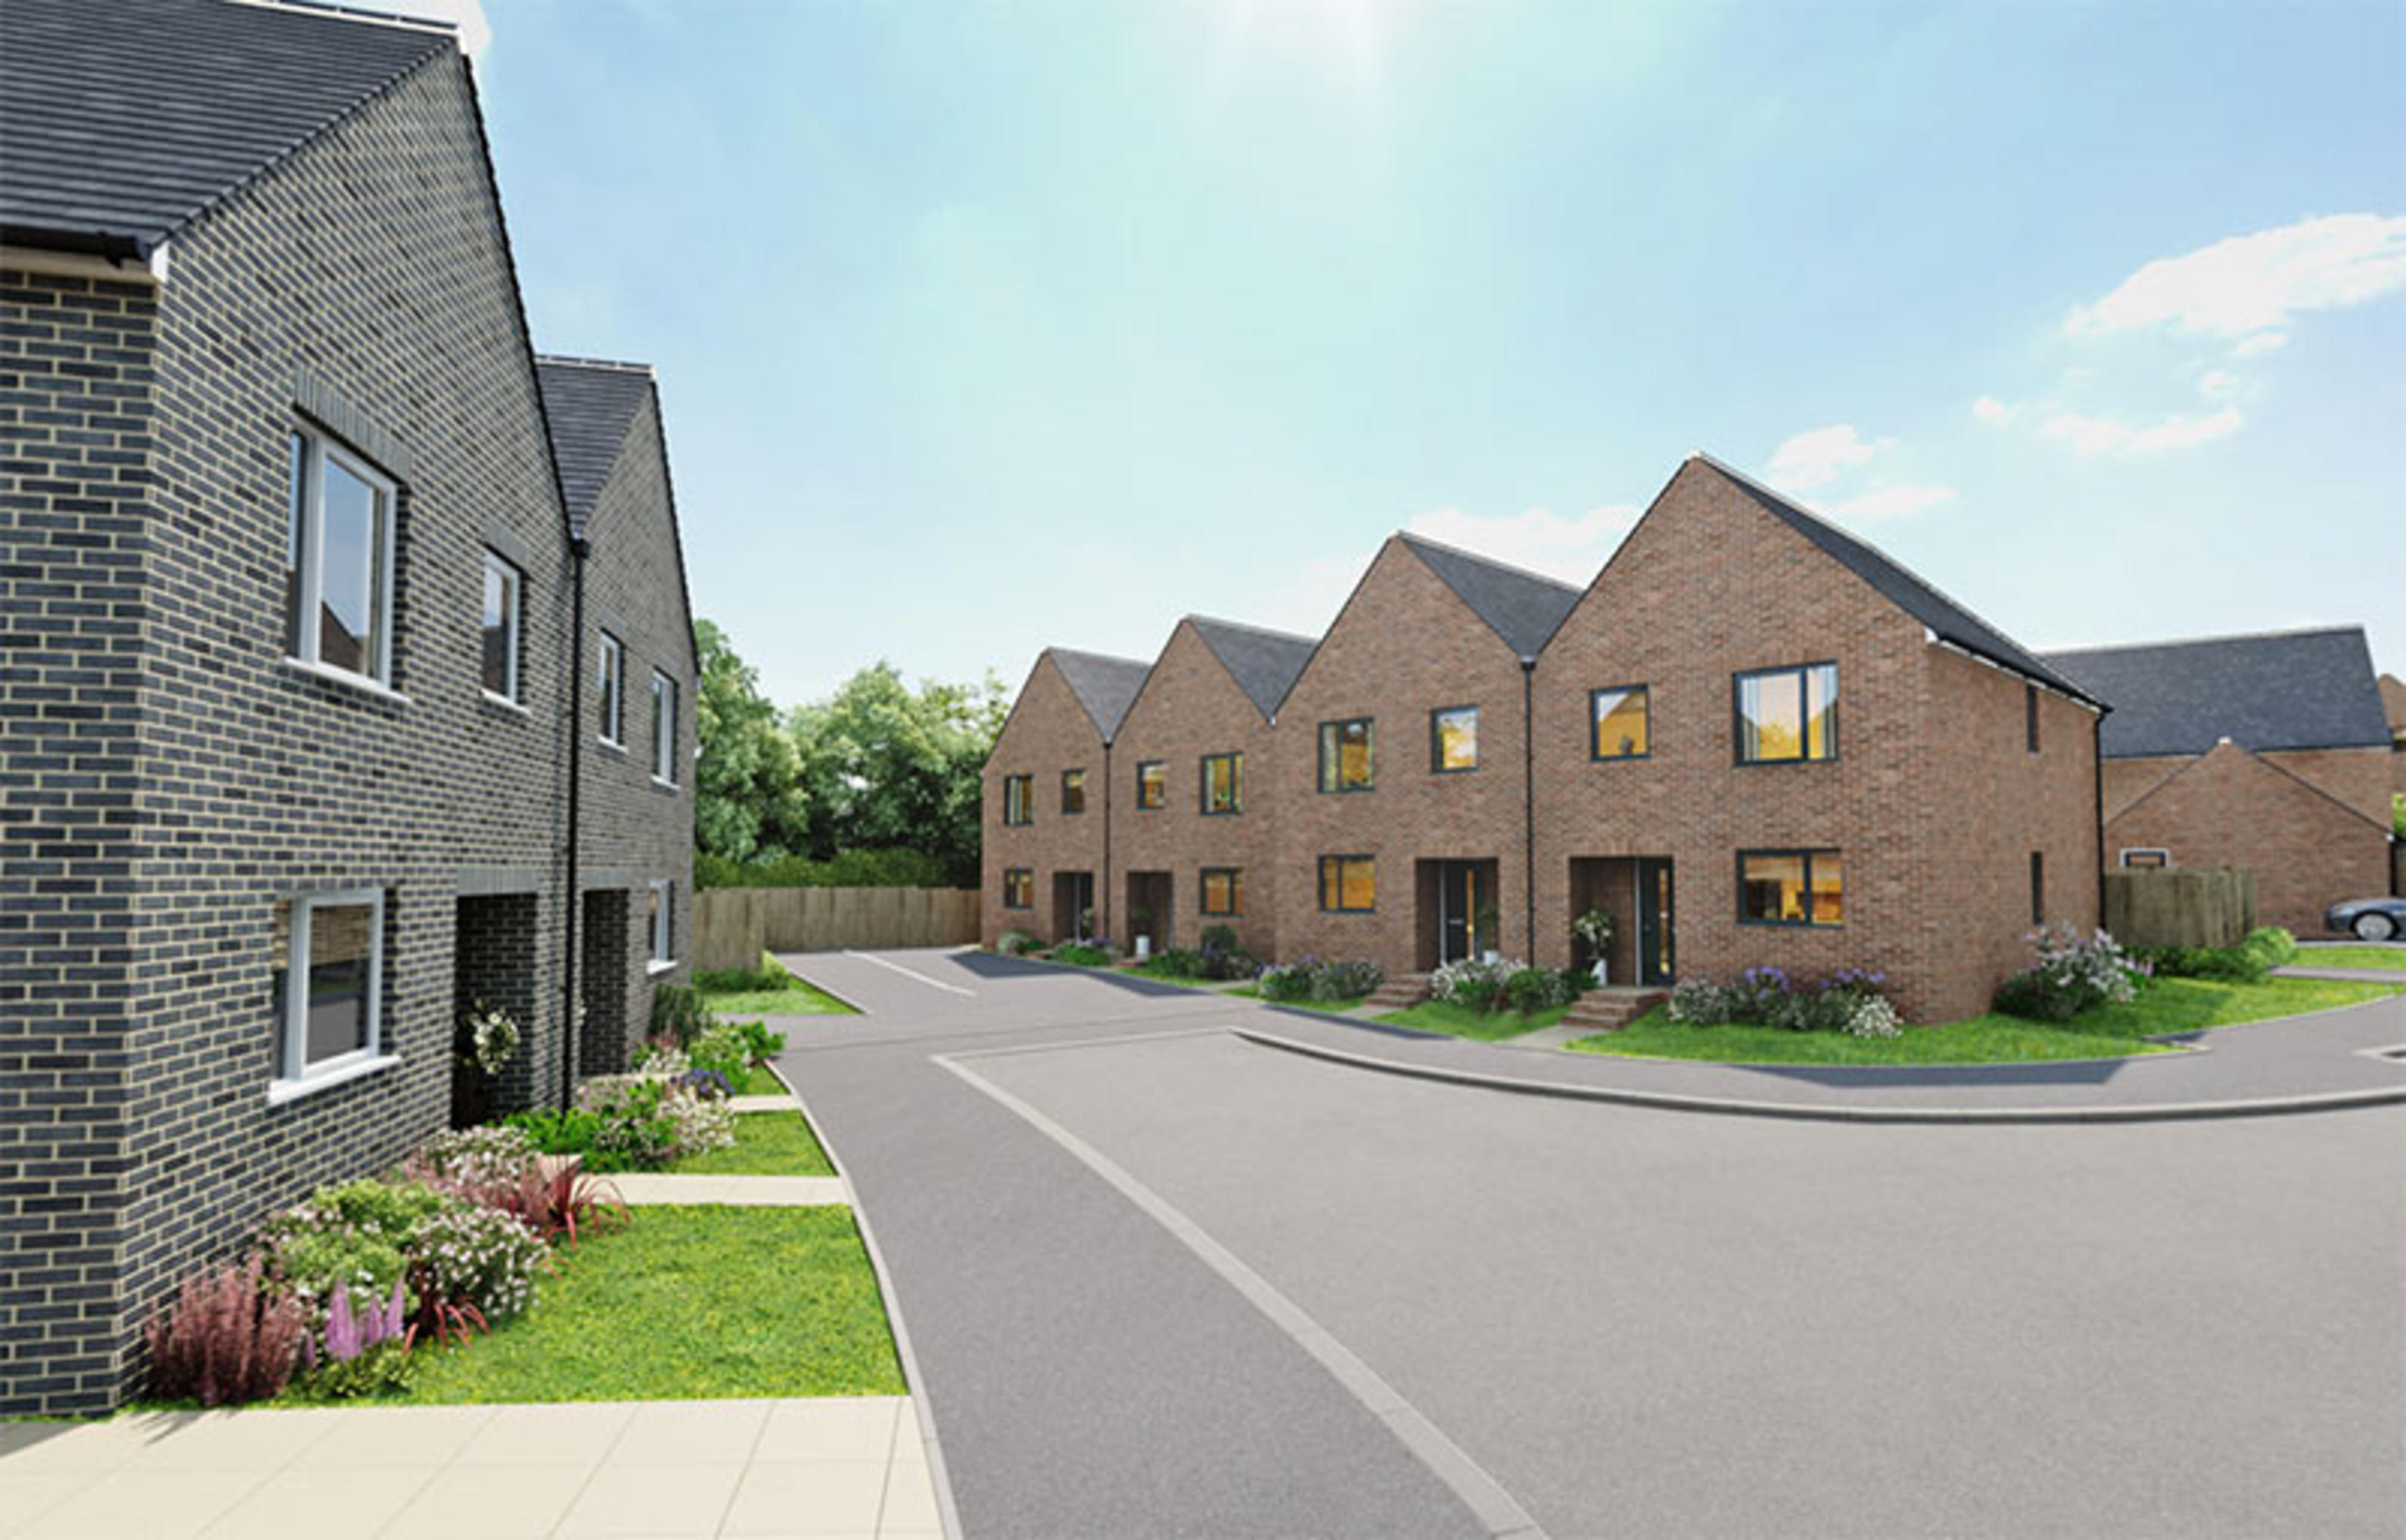 CGI of street of semi-detached new build homes with front gardens at Ellison Grove, Hebburn